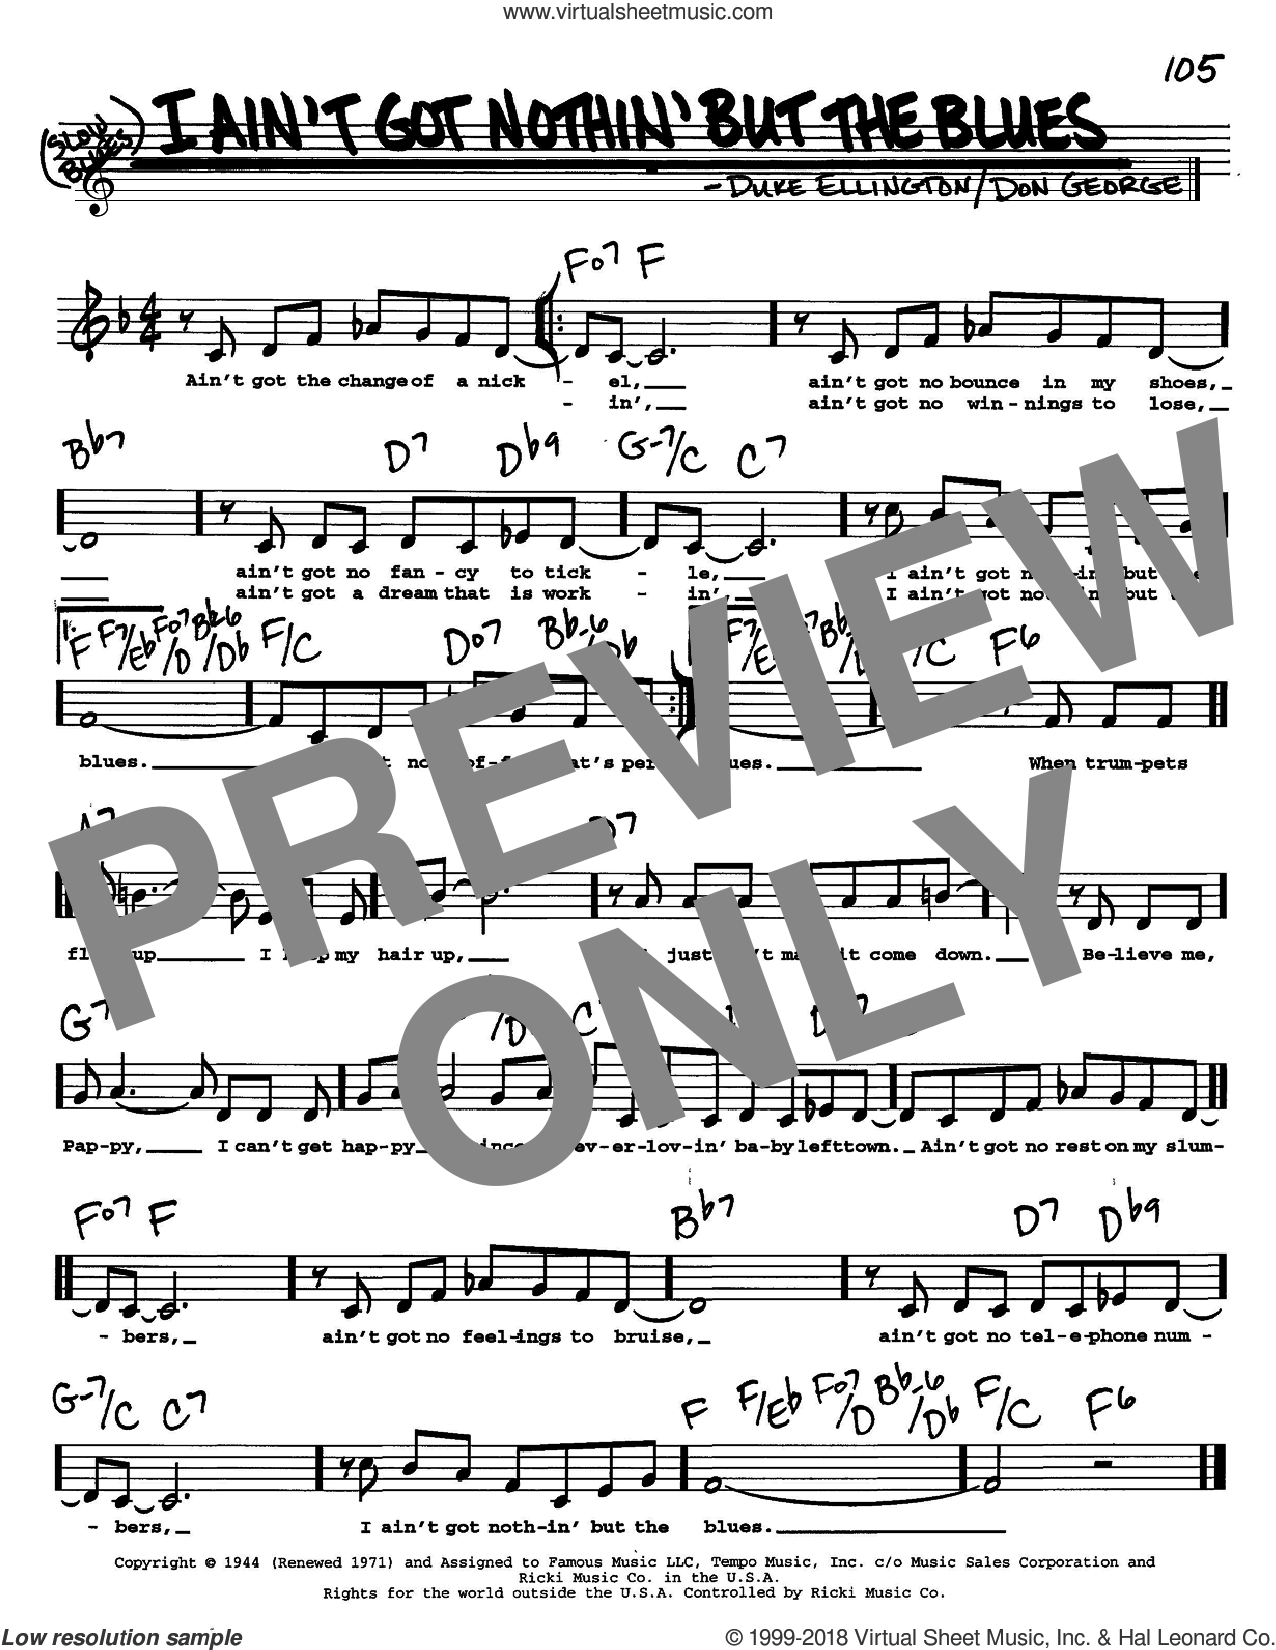 I Ain't Got Nothin' But The Blues sheet music for voice and other instruments  by Duke Ellington and Don George, intermediate skill level